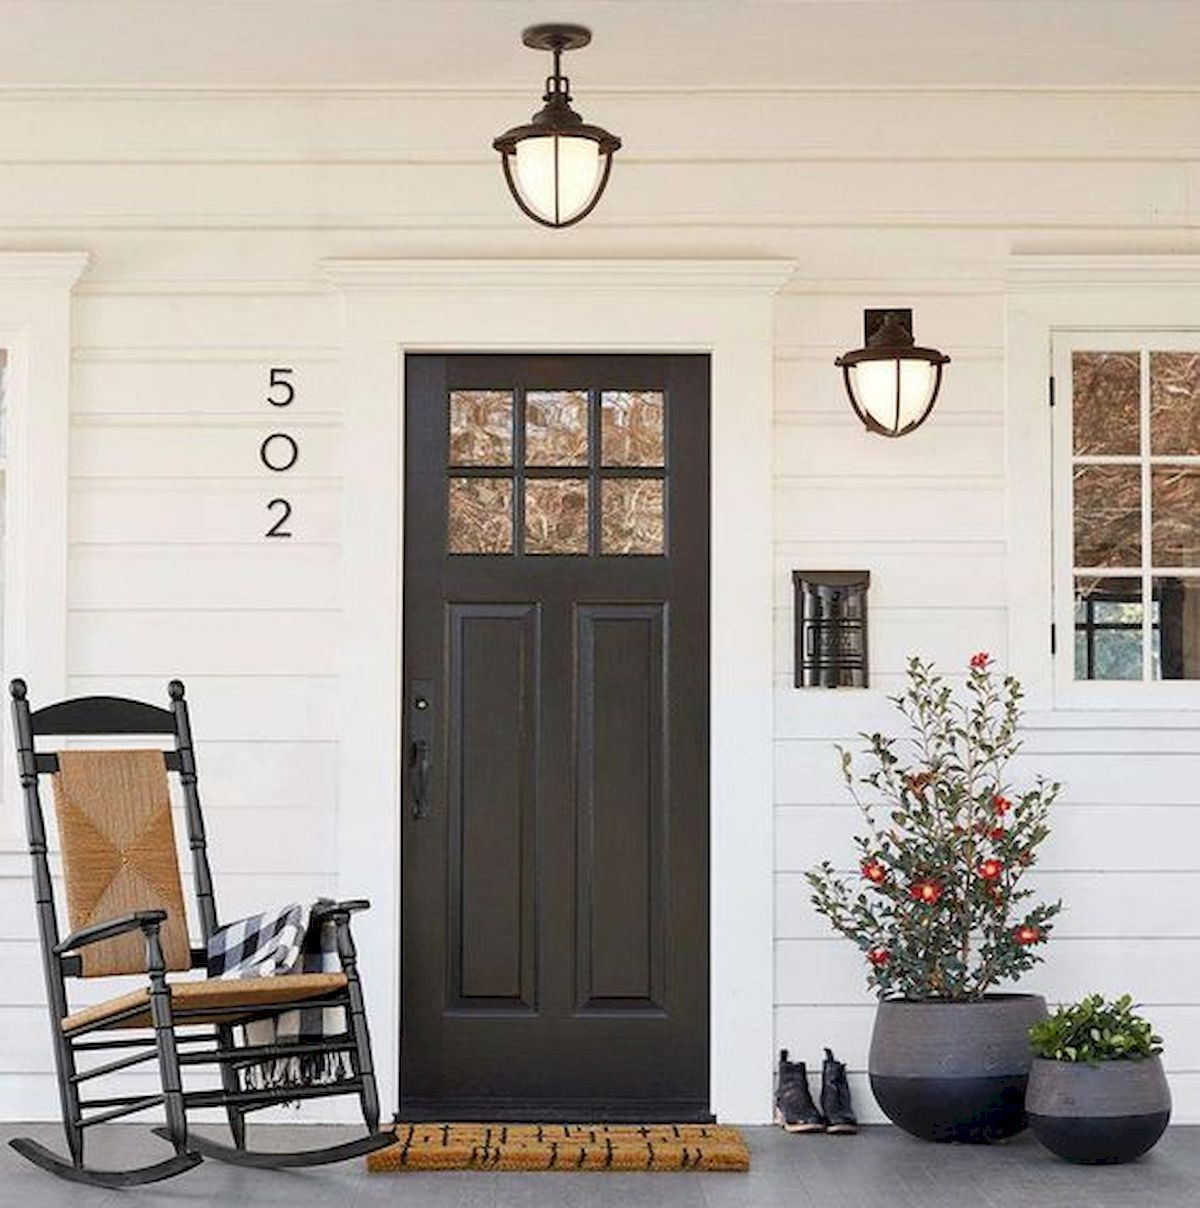 70-Beautiful-Farmhouse-Front-Door-Design-Ideas-And-Decor-60.jpg